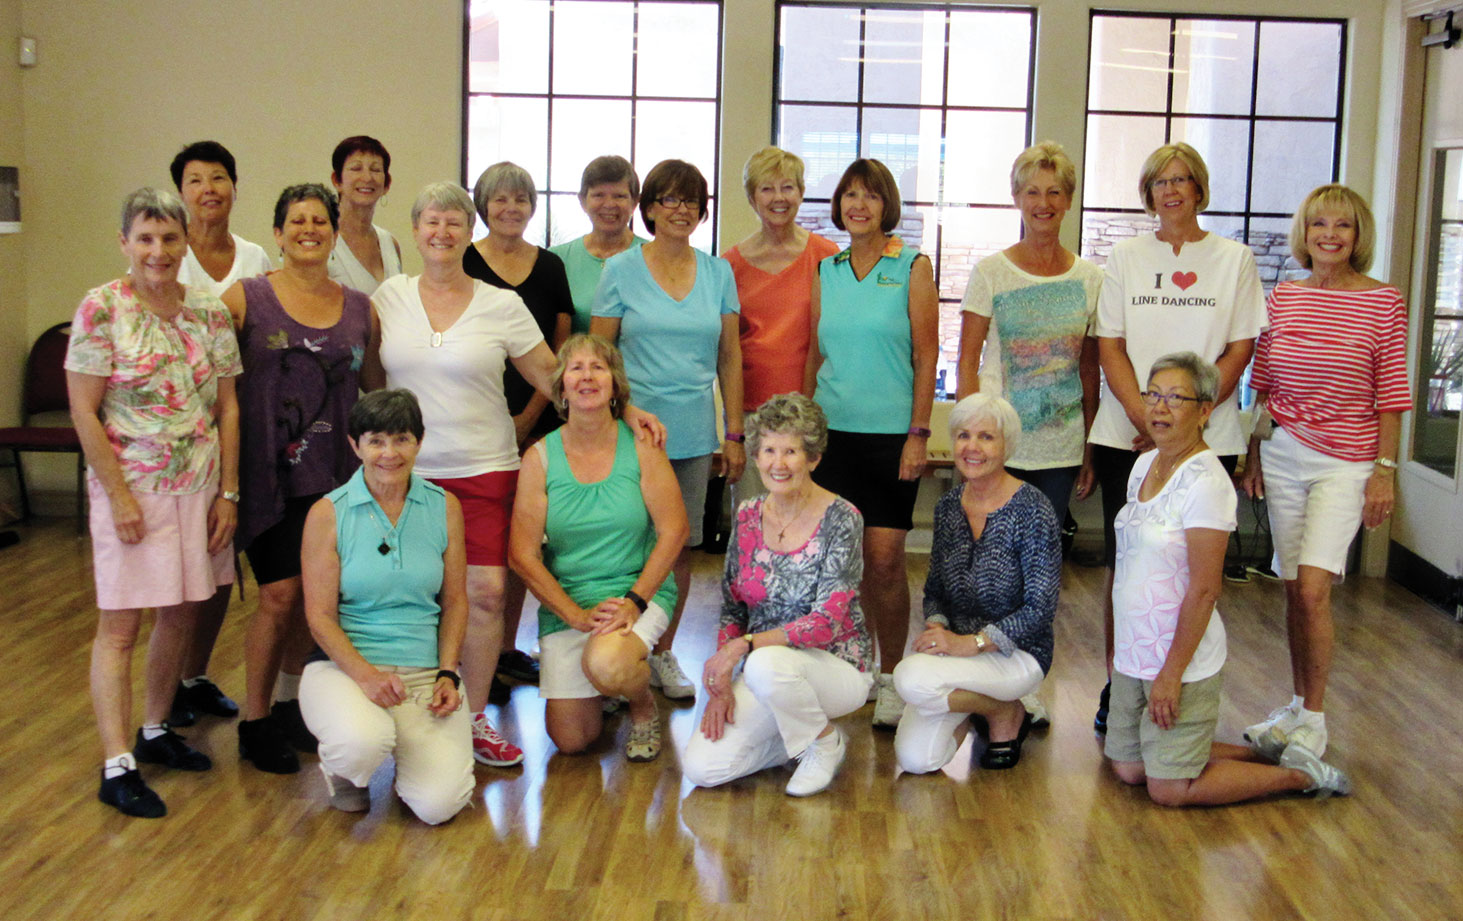 Monday afternoons are great fun for these pretty line dancers in Rebecca's Easy Intermediate class as summer temps arrive.